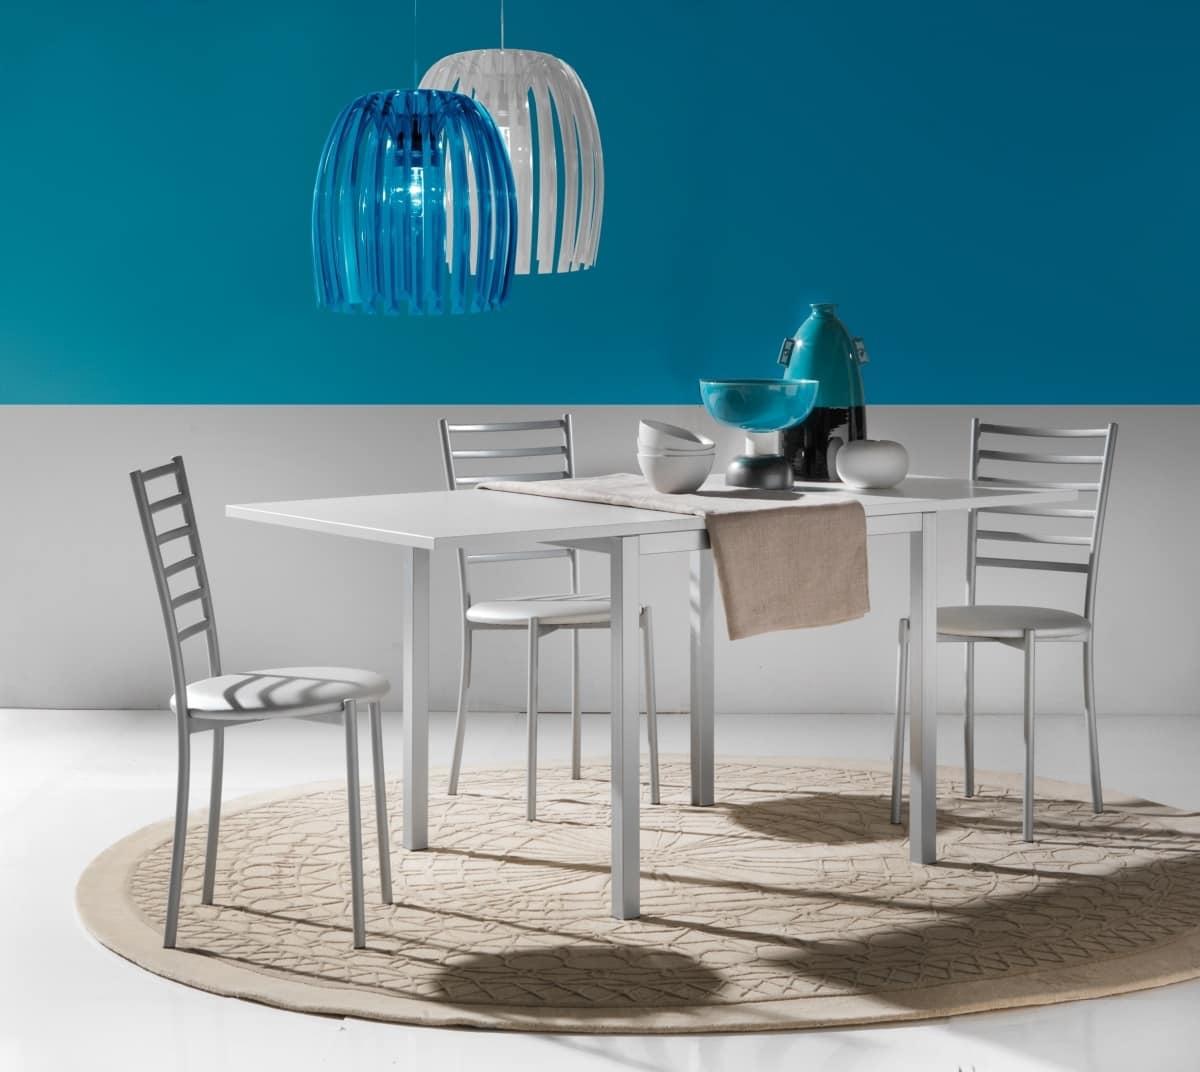 Art. 667 Web, Small dining table with folding opening